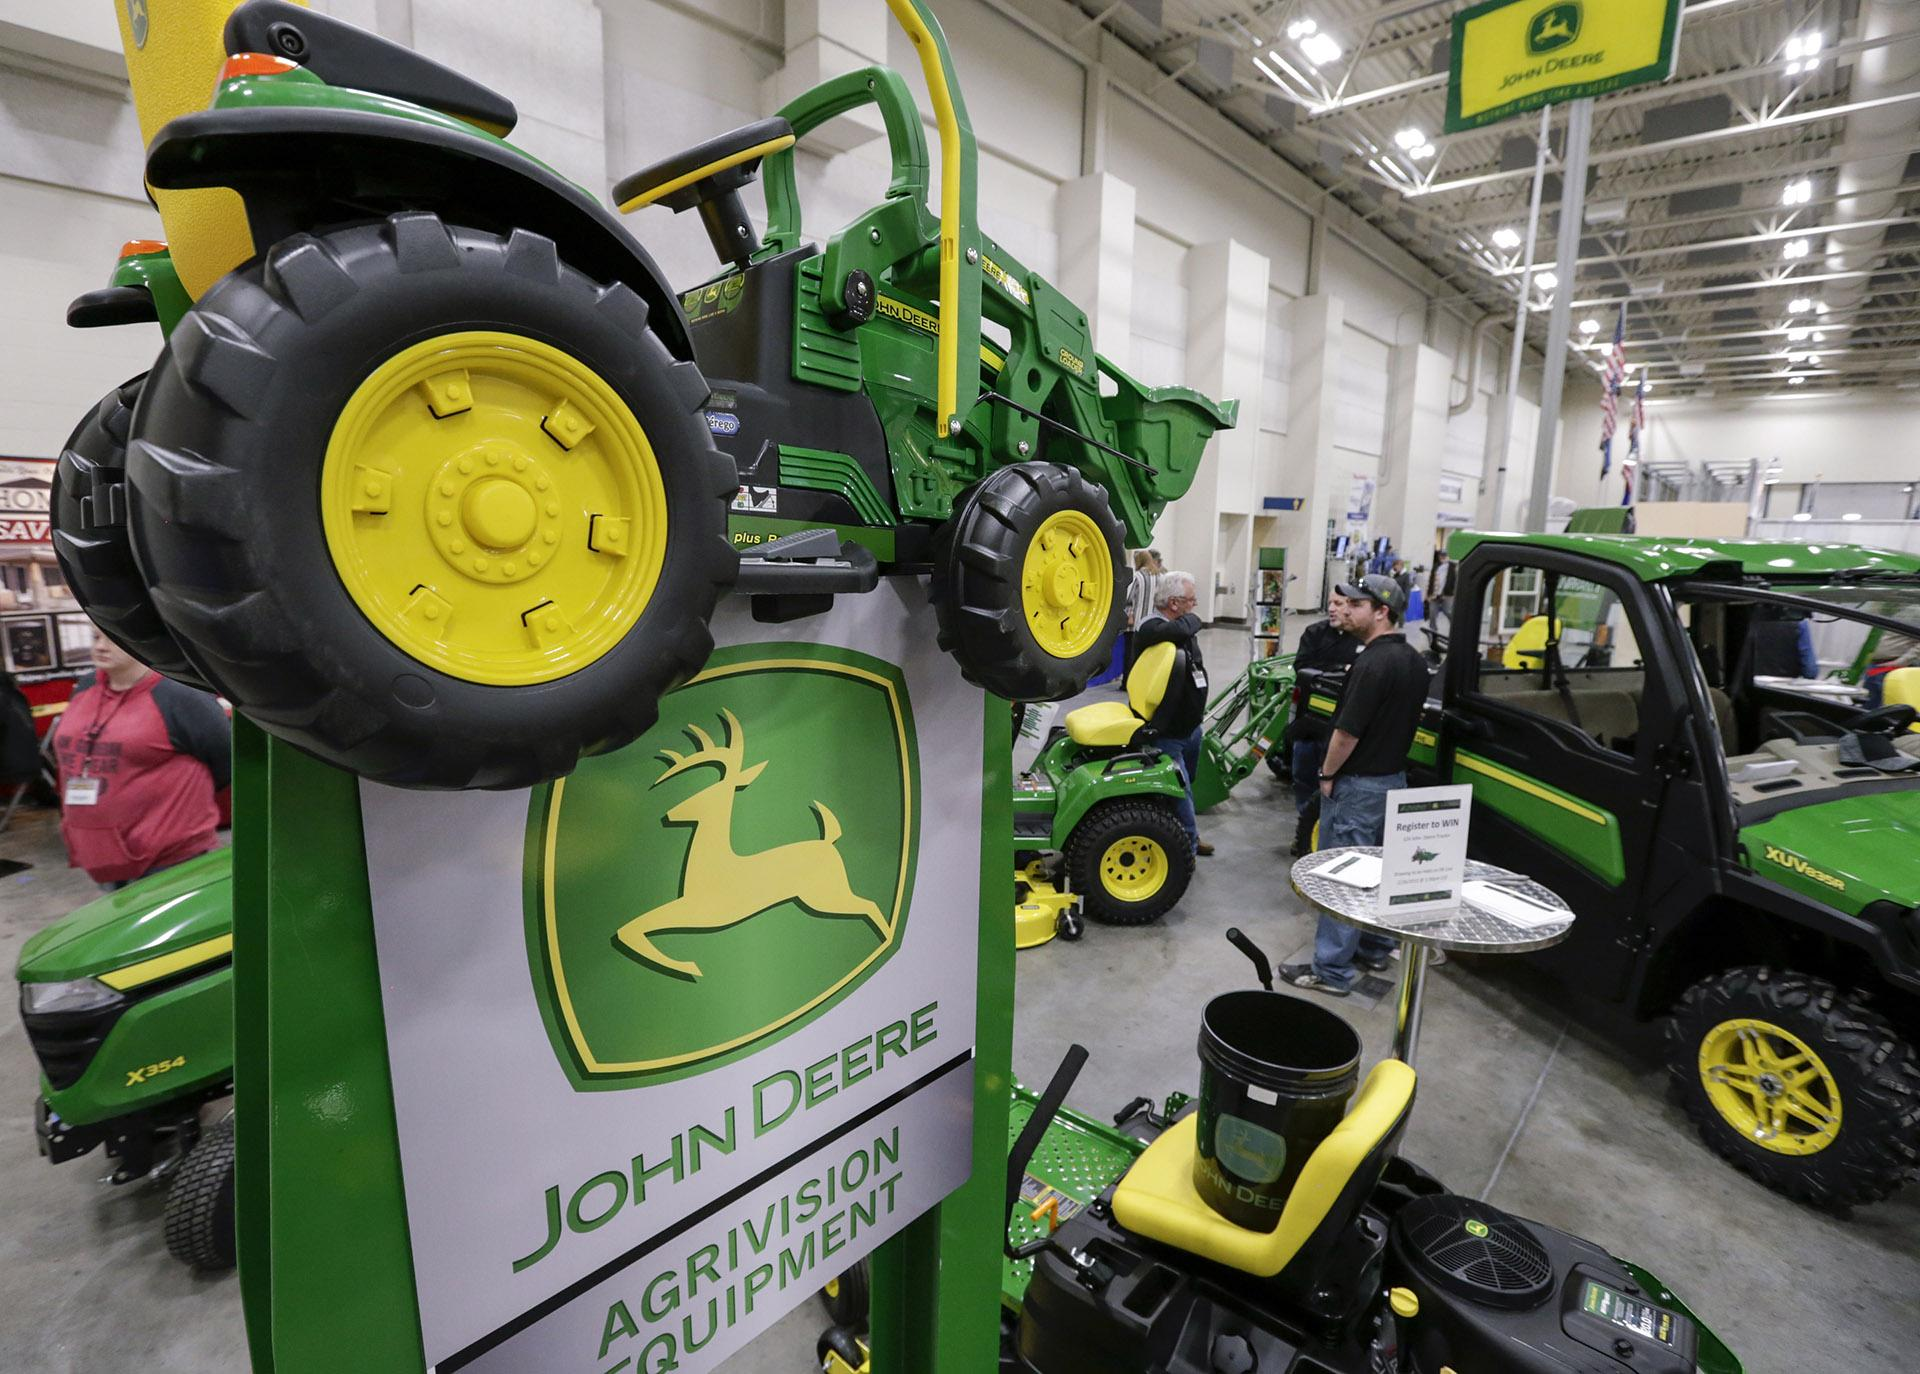 In this Feb. 23, 2018 file photo, John Deere products, including a toy tractor on the sign, are on display at a home and garden trade show in Council Bluffs, Iowa. (AP Photo / Nati Harnik, File)